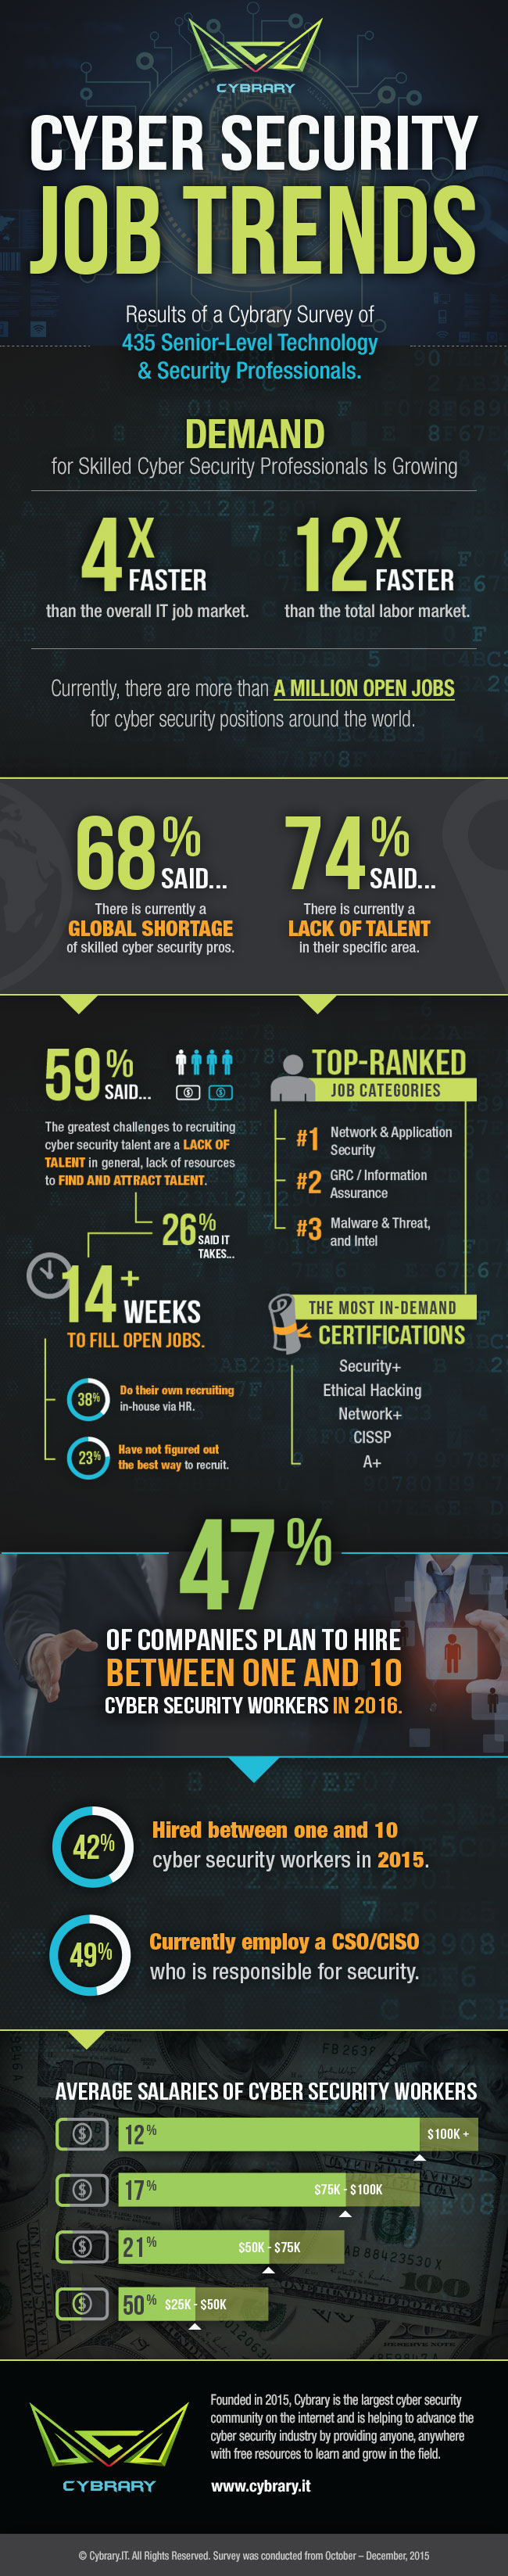 Infographic for 2016 Cyber Security Job Trends